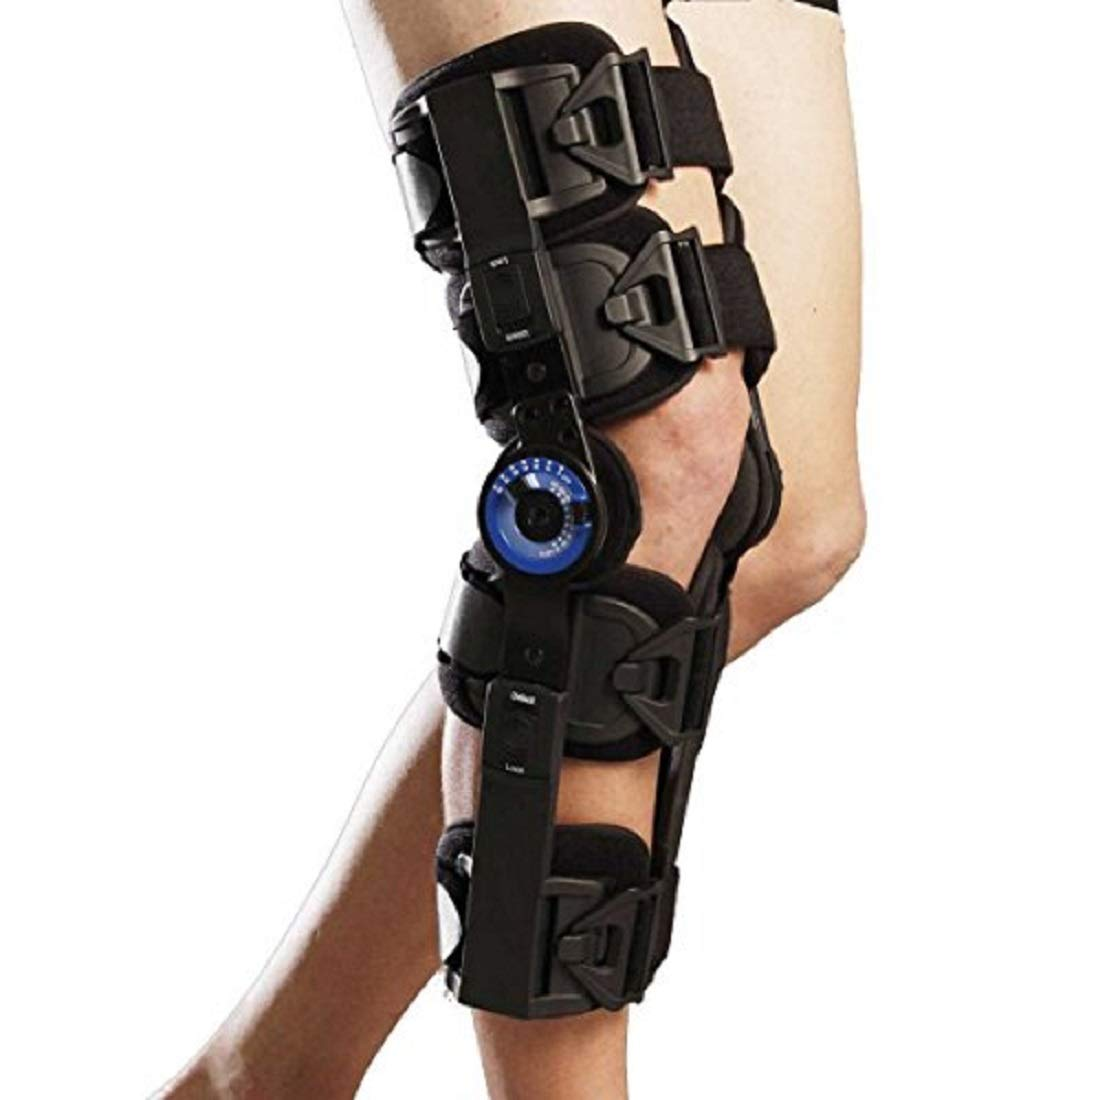 Orthomen Hinged ROM Knee Brace, Post Op Knee Brace for Recovery Stabilization, Adjustable Medical Orthopedic Support Stabilizer After Surgery (Universal - One Size)